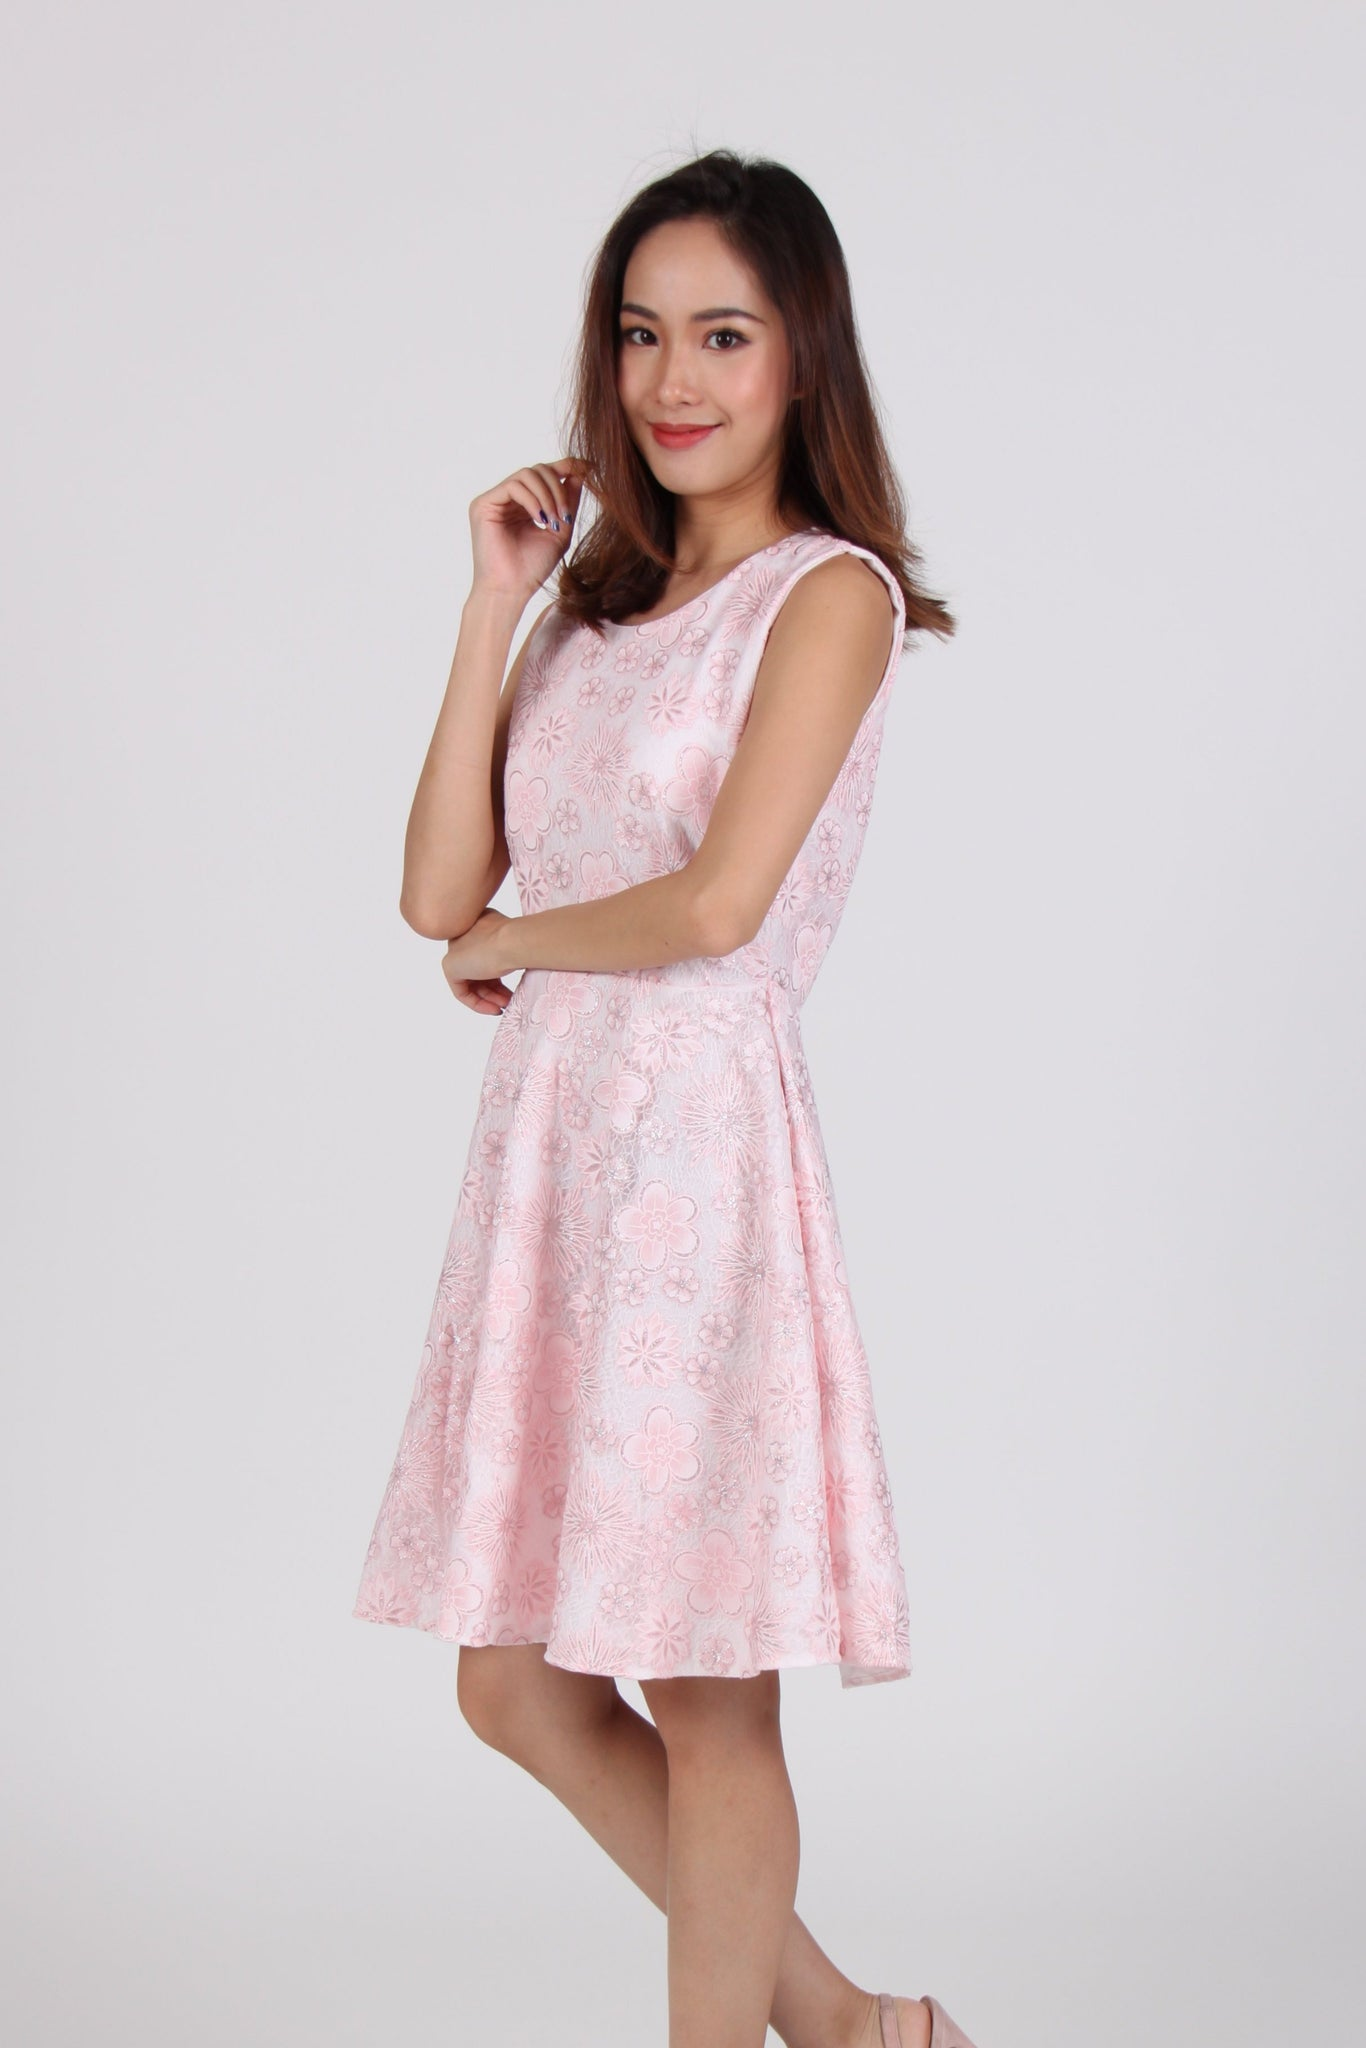 Glitter Floral Lace Skater Dress in Light Pink